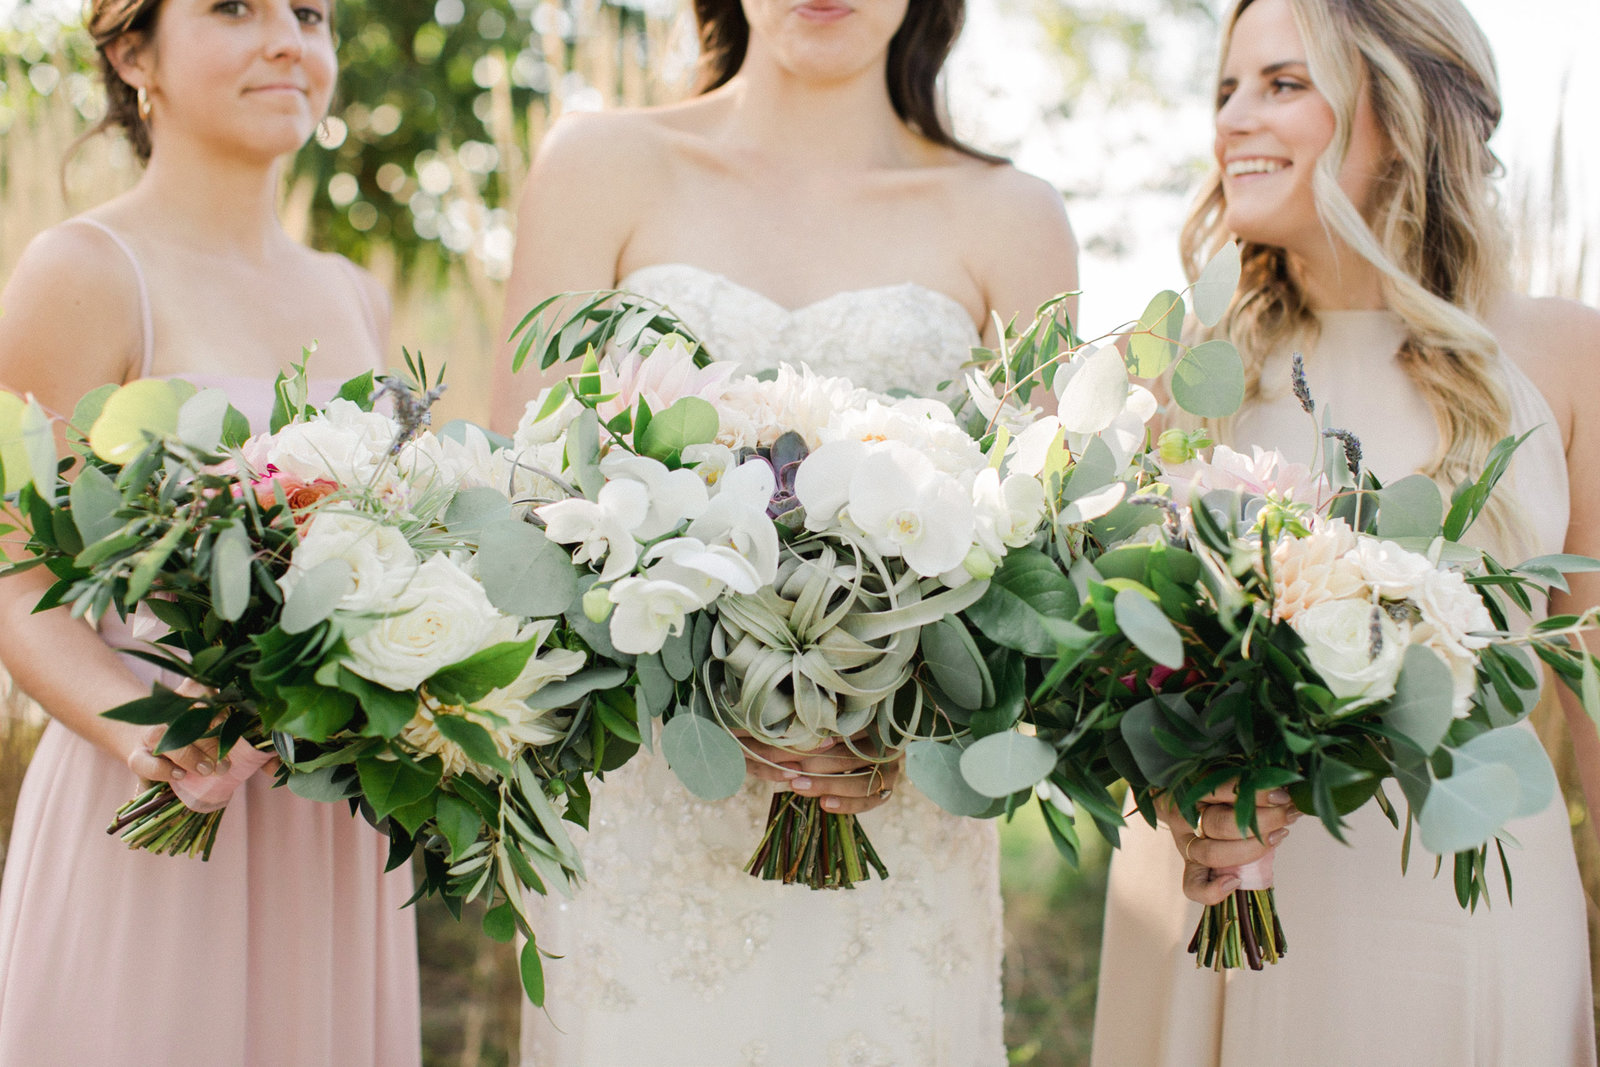 Saltwater Farm Vineyard Wedding_Blush Bridesmaids 5